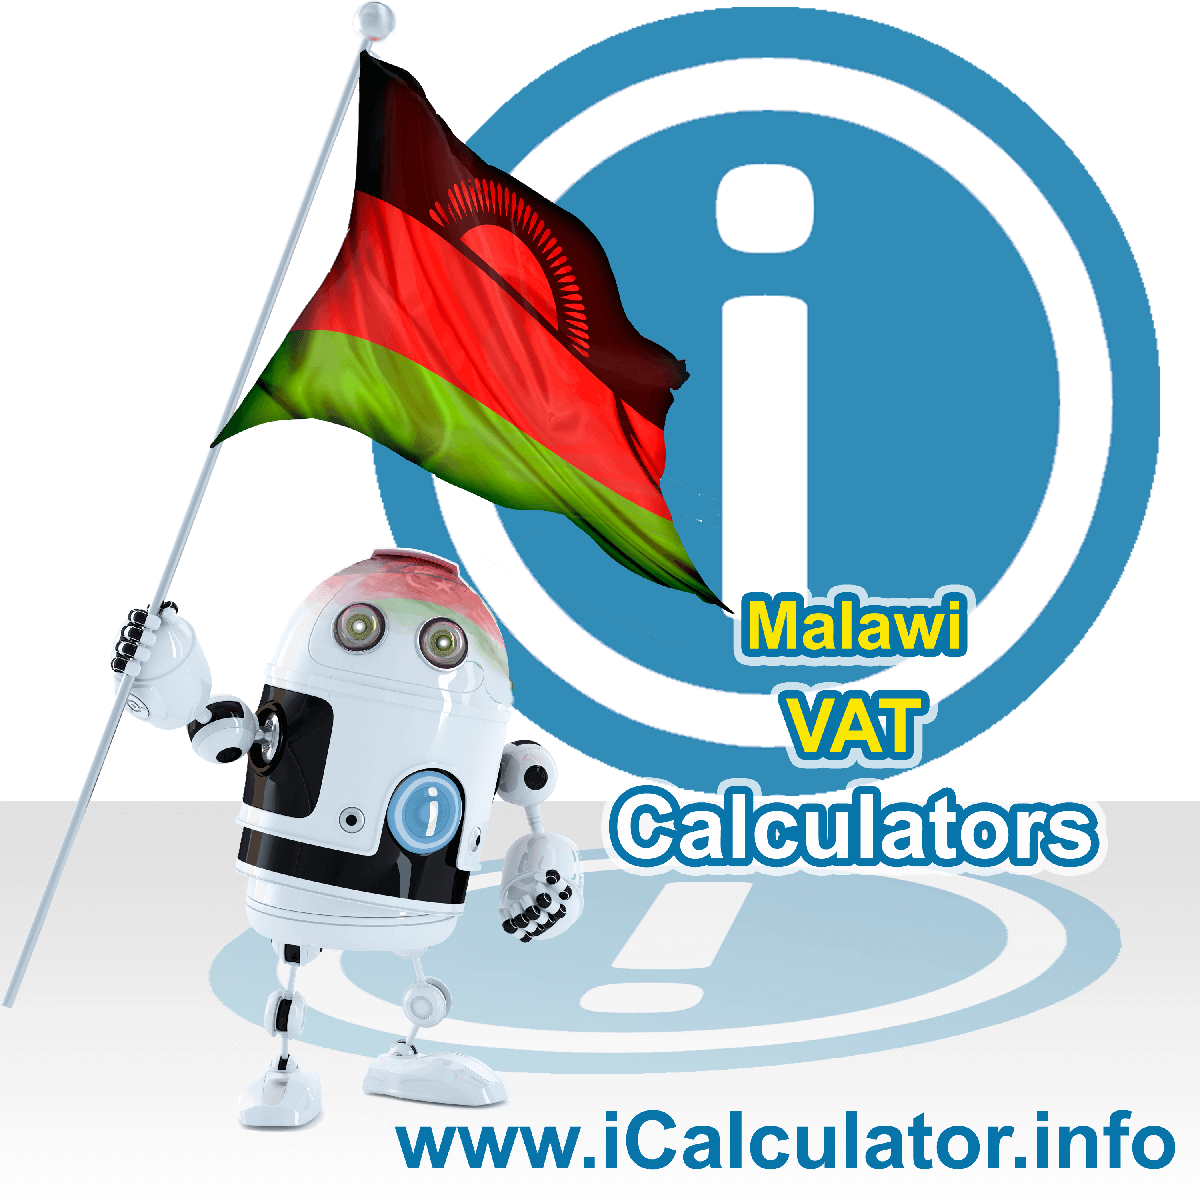 Malawi VAT Calculator. This image shows the Malawi flag and information relating to the VAT formula used for calculating Value Added Tax in Malawi using the Malawi VAT Calculator in 2021